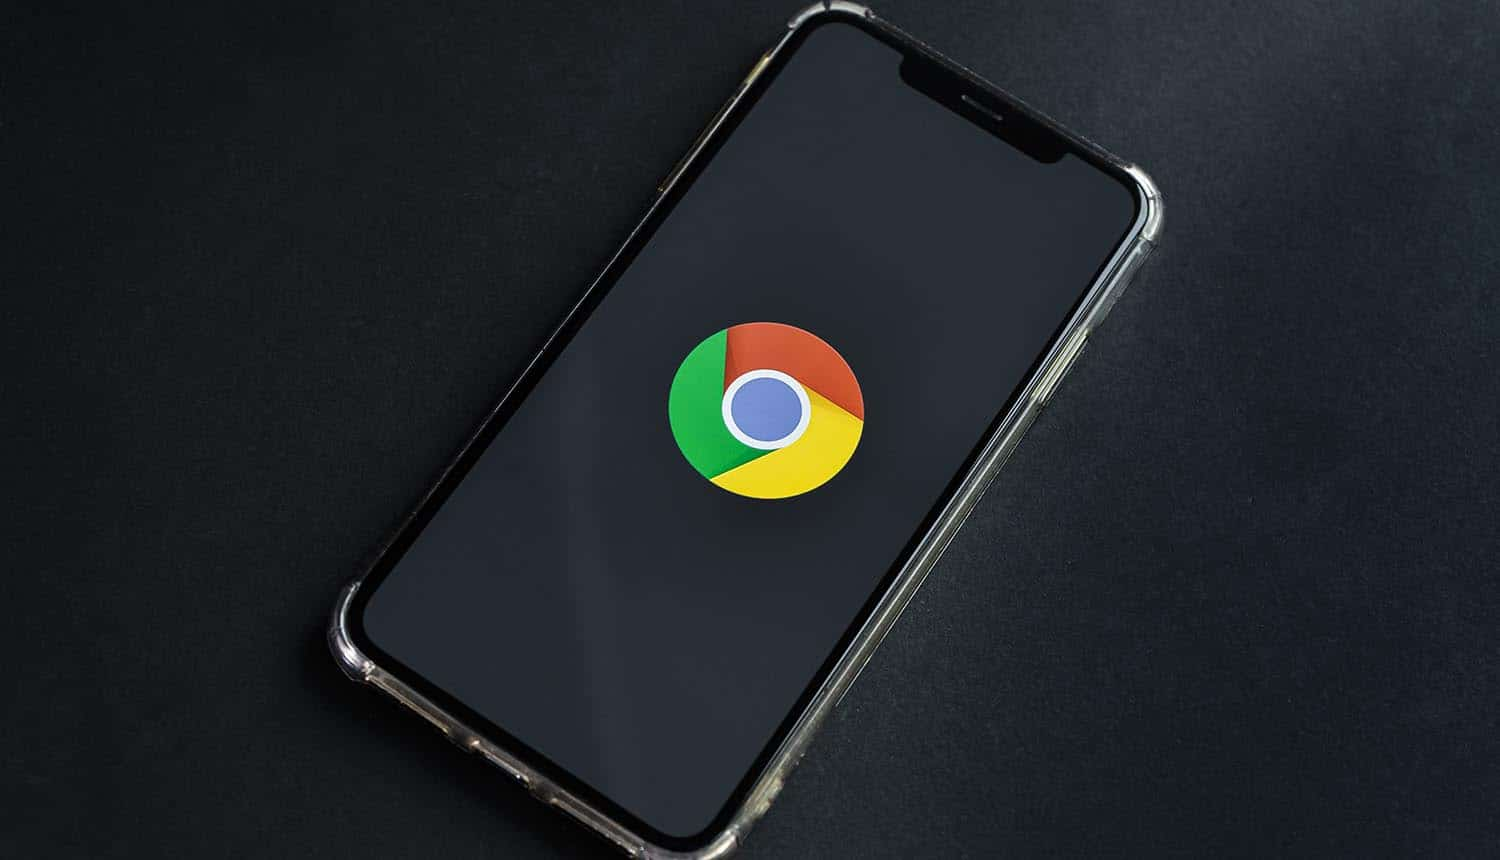 Google Chrome application icon on phone showing spyware campaign using Chrome extensions